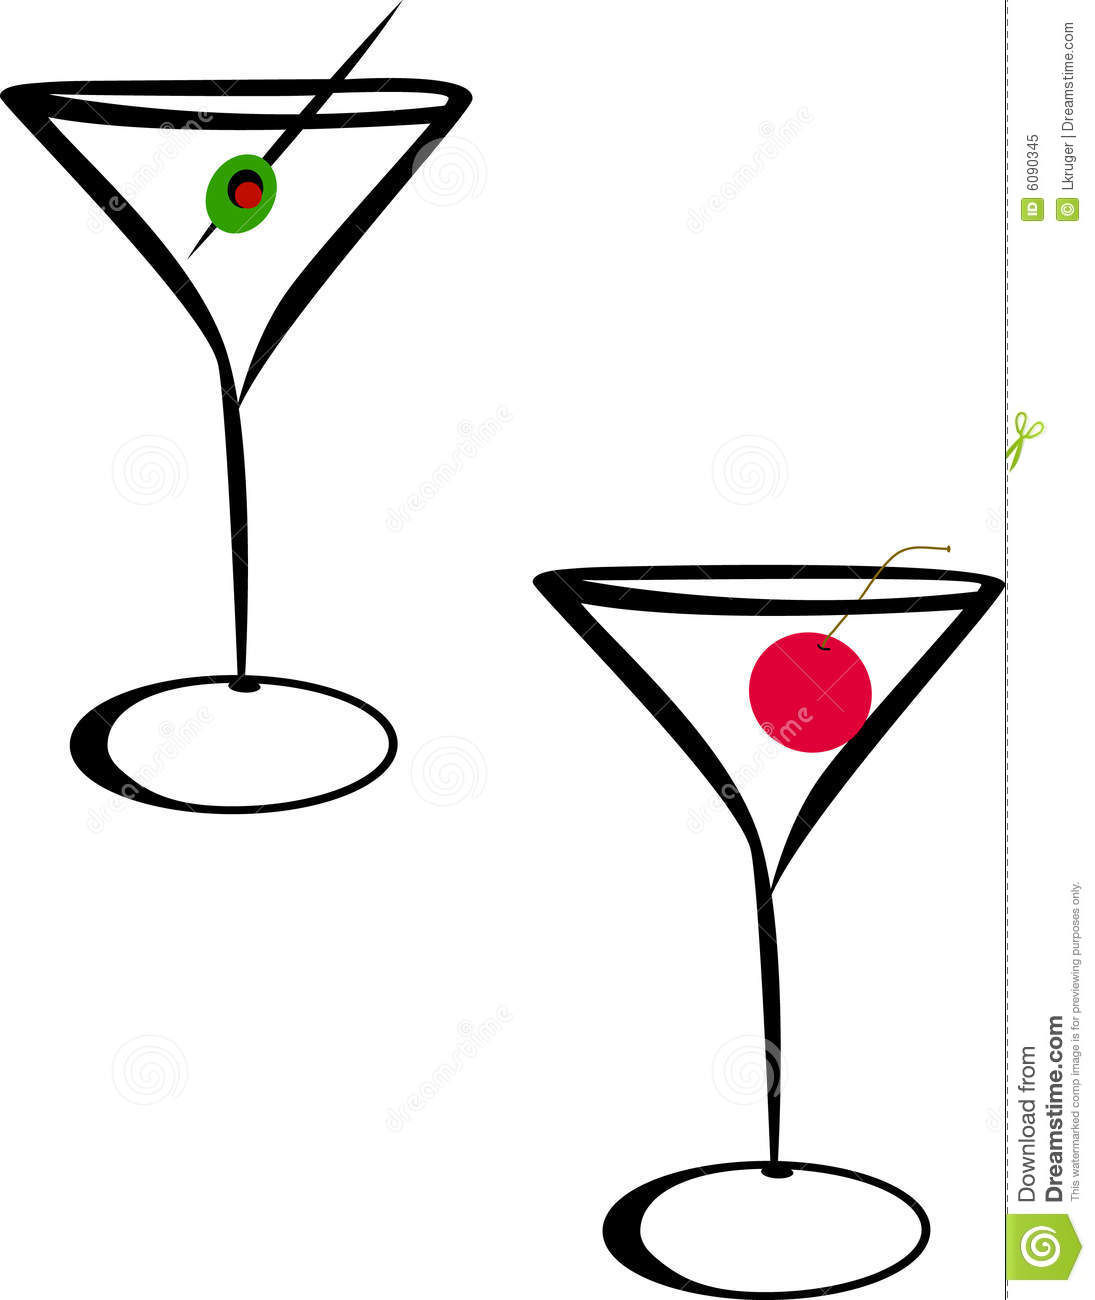 girl in martini glass silhouette at getdrawings com free for rh getdrawings com martini glass clipart vector free martini glass clipart white